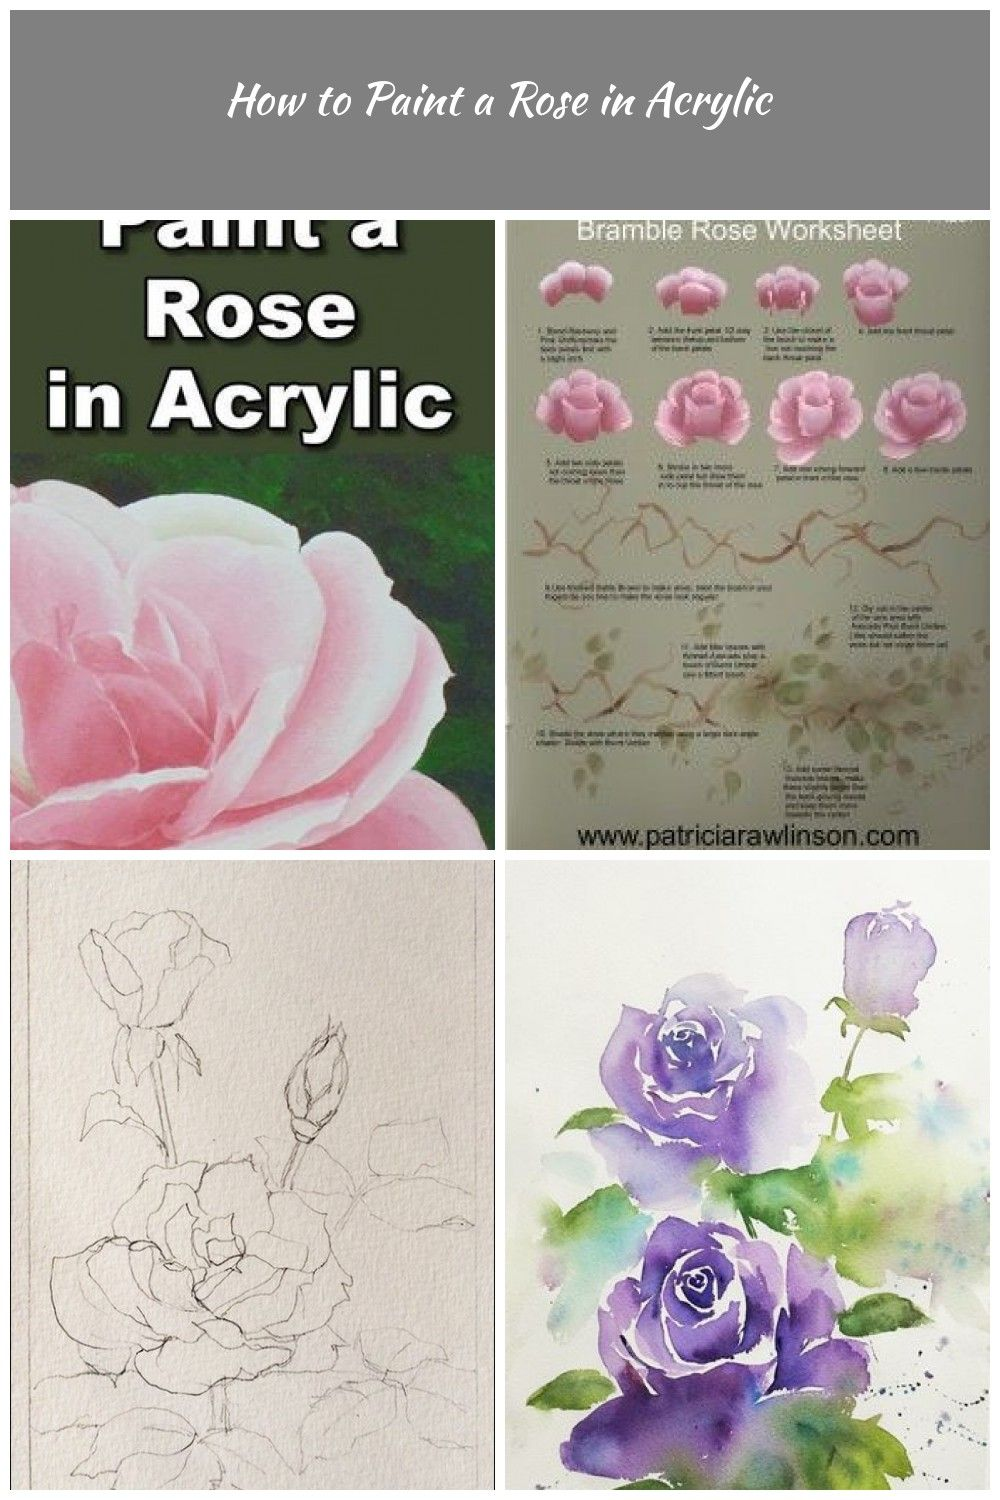 Roses Are One Of The Most Popular Flowers But Not As Easy To Paint In This Class You Will Learn The Secrets Most Popular Flowers Realistic Rose Rose Painting